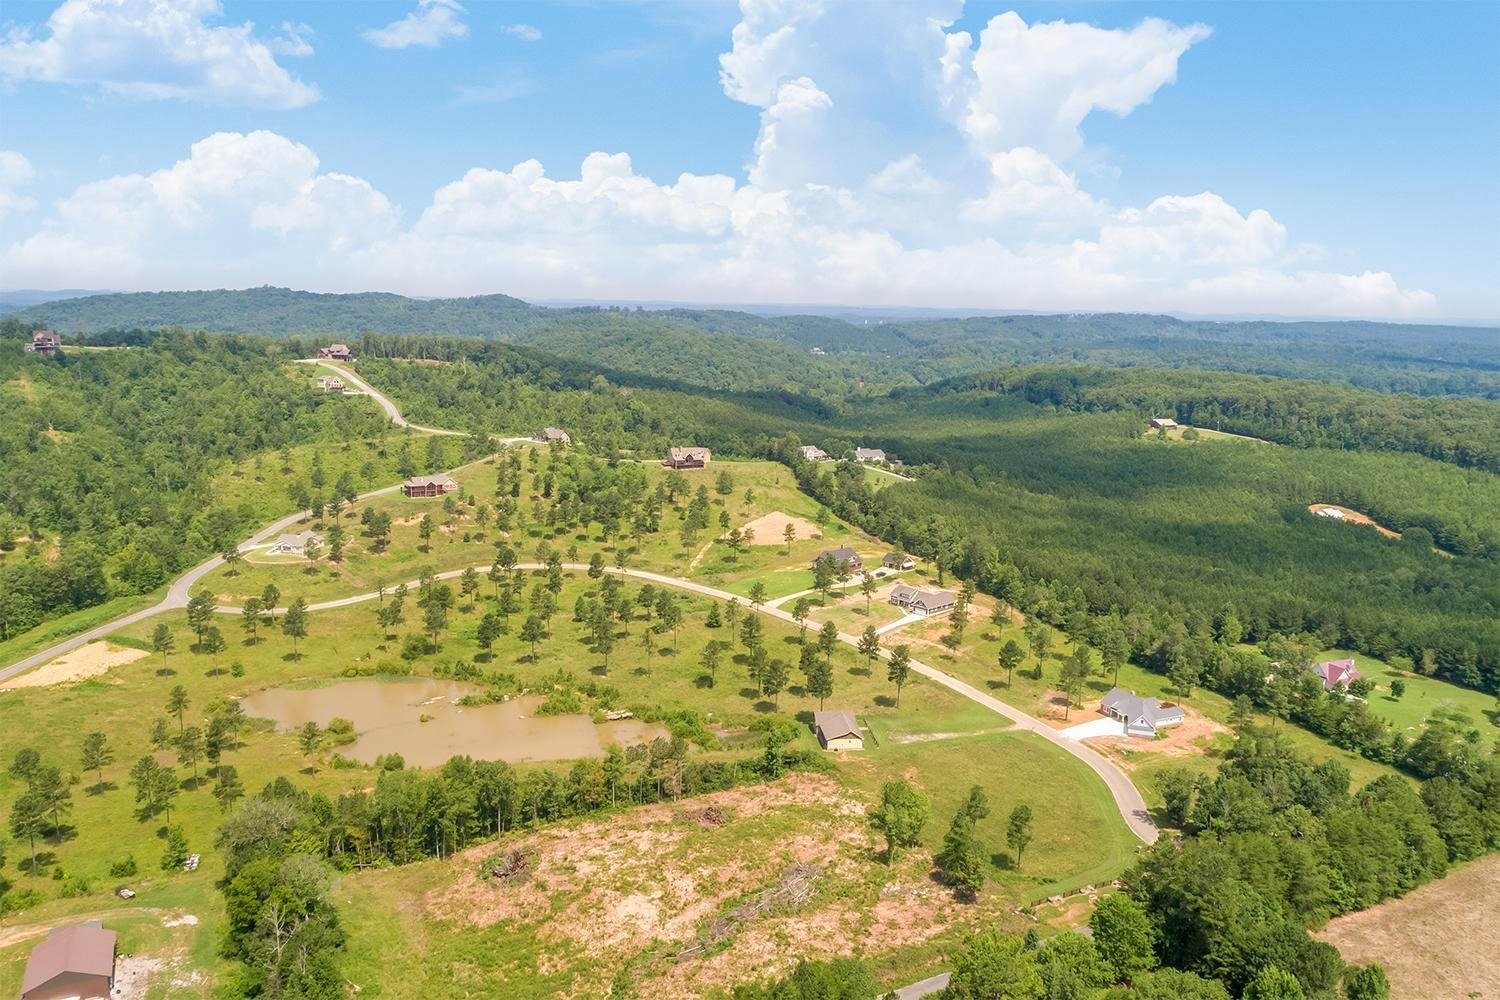 Land for Sale at 3.92 Acres Ocoee Ridge Subdivision Ocoee, Tennessee 37361 United States